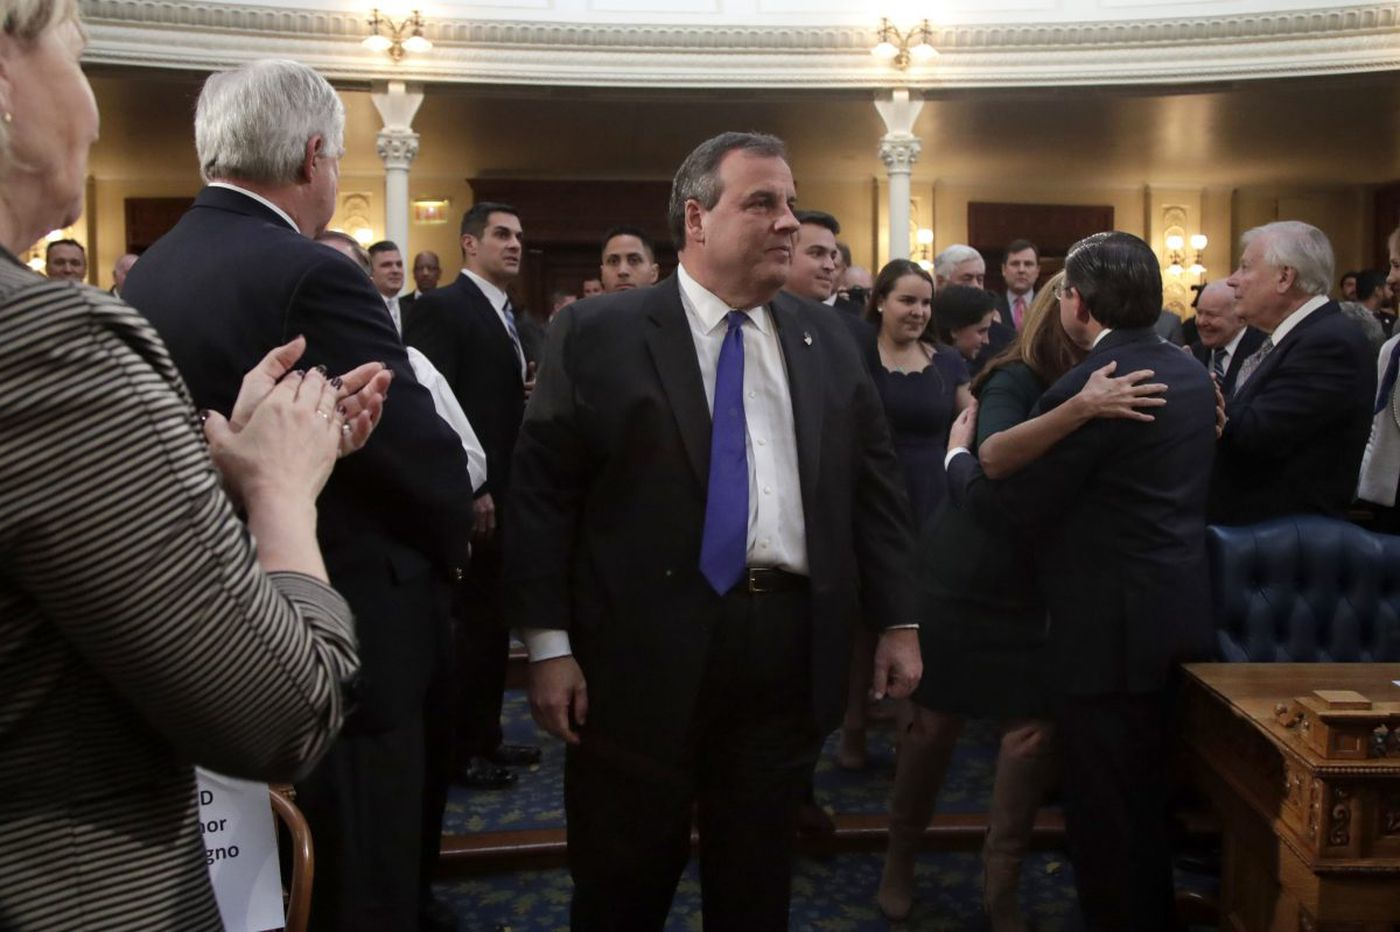 Chris Christie said he was 'tired' of the GOP 'crazies.' Did he join them?